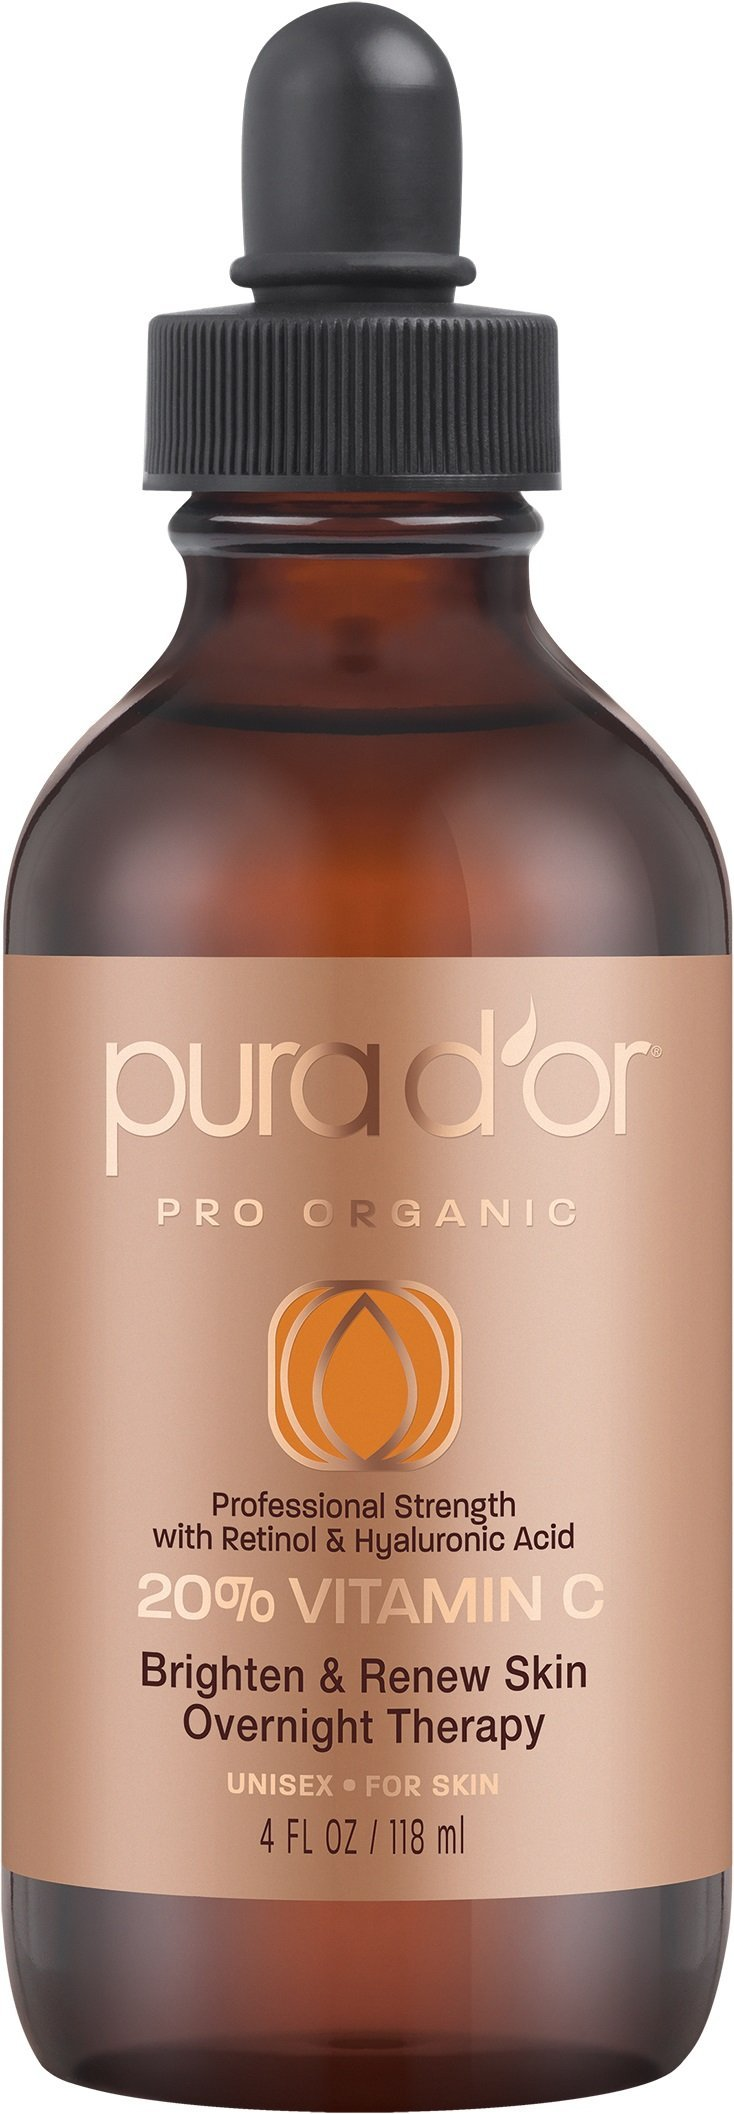 PURA D'OR 20% Vitamin C Serum Professional Strength Anti-Aging Skin Therapy Organic Argan Oil, Hyaluronic Acid & Vitamin E, 4 Fluid Ounce by PURA D'OR (Image #1)